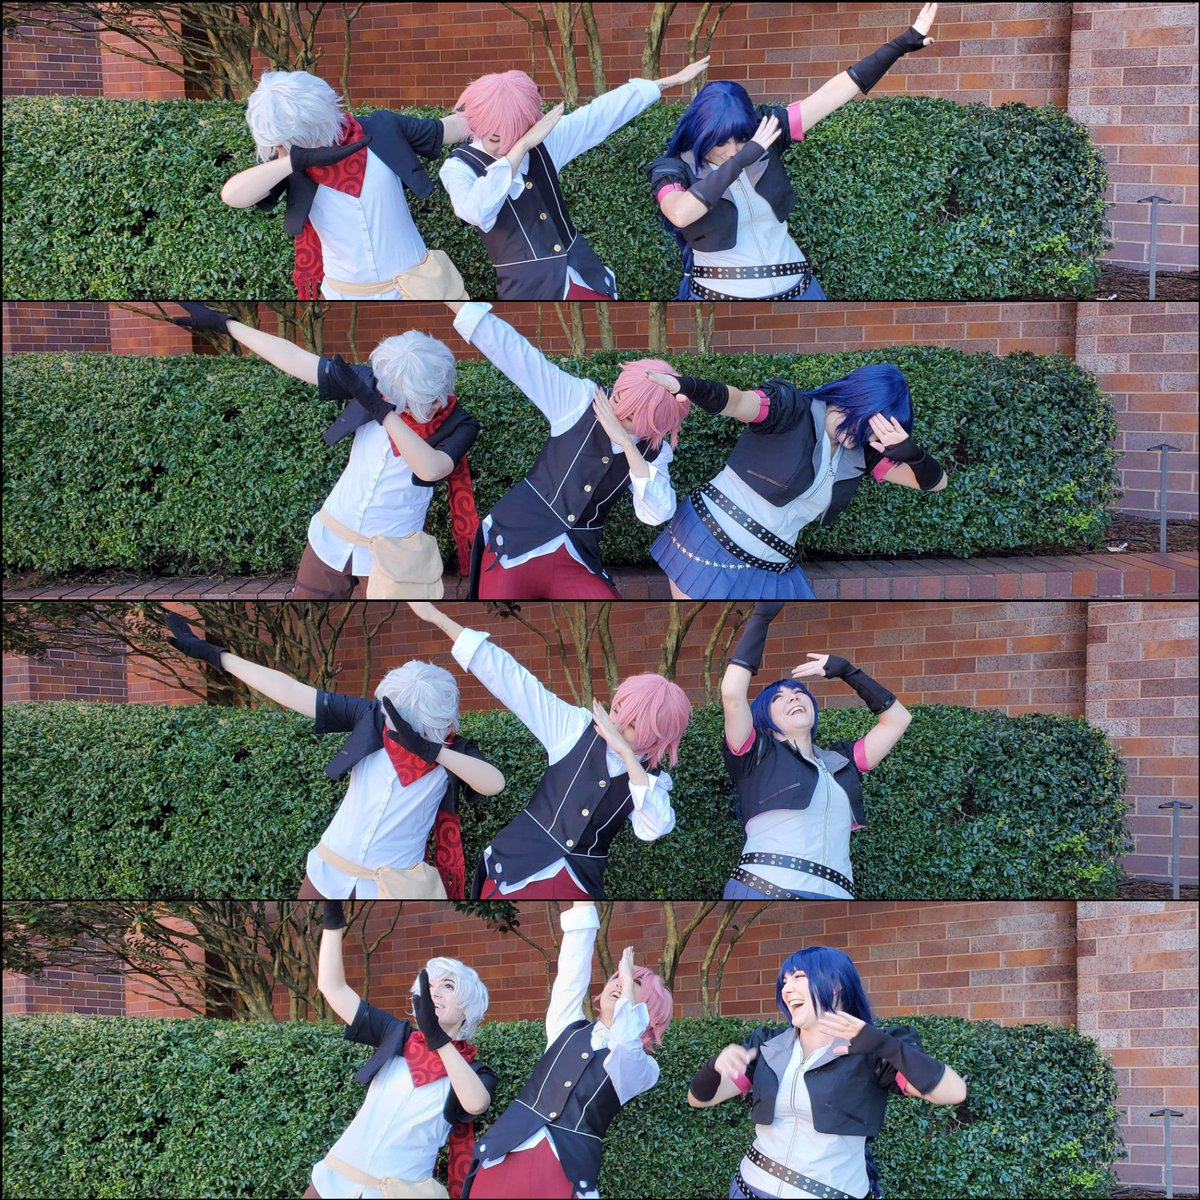 KH Re:Mind DLC is out today! I probably won't get to play until tomorrow but I'm hype.  Here's me (Ephemer), @coffeecatcos  (Lauriam), and @BBBTweetTweet (Skuld) as out favorite Dandelions to celebrate. #KingdomHearts #kingdomheartscosplay pic.twitter.com/iTHtvcFyqH